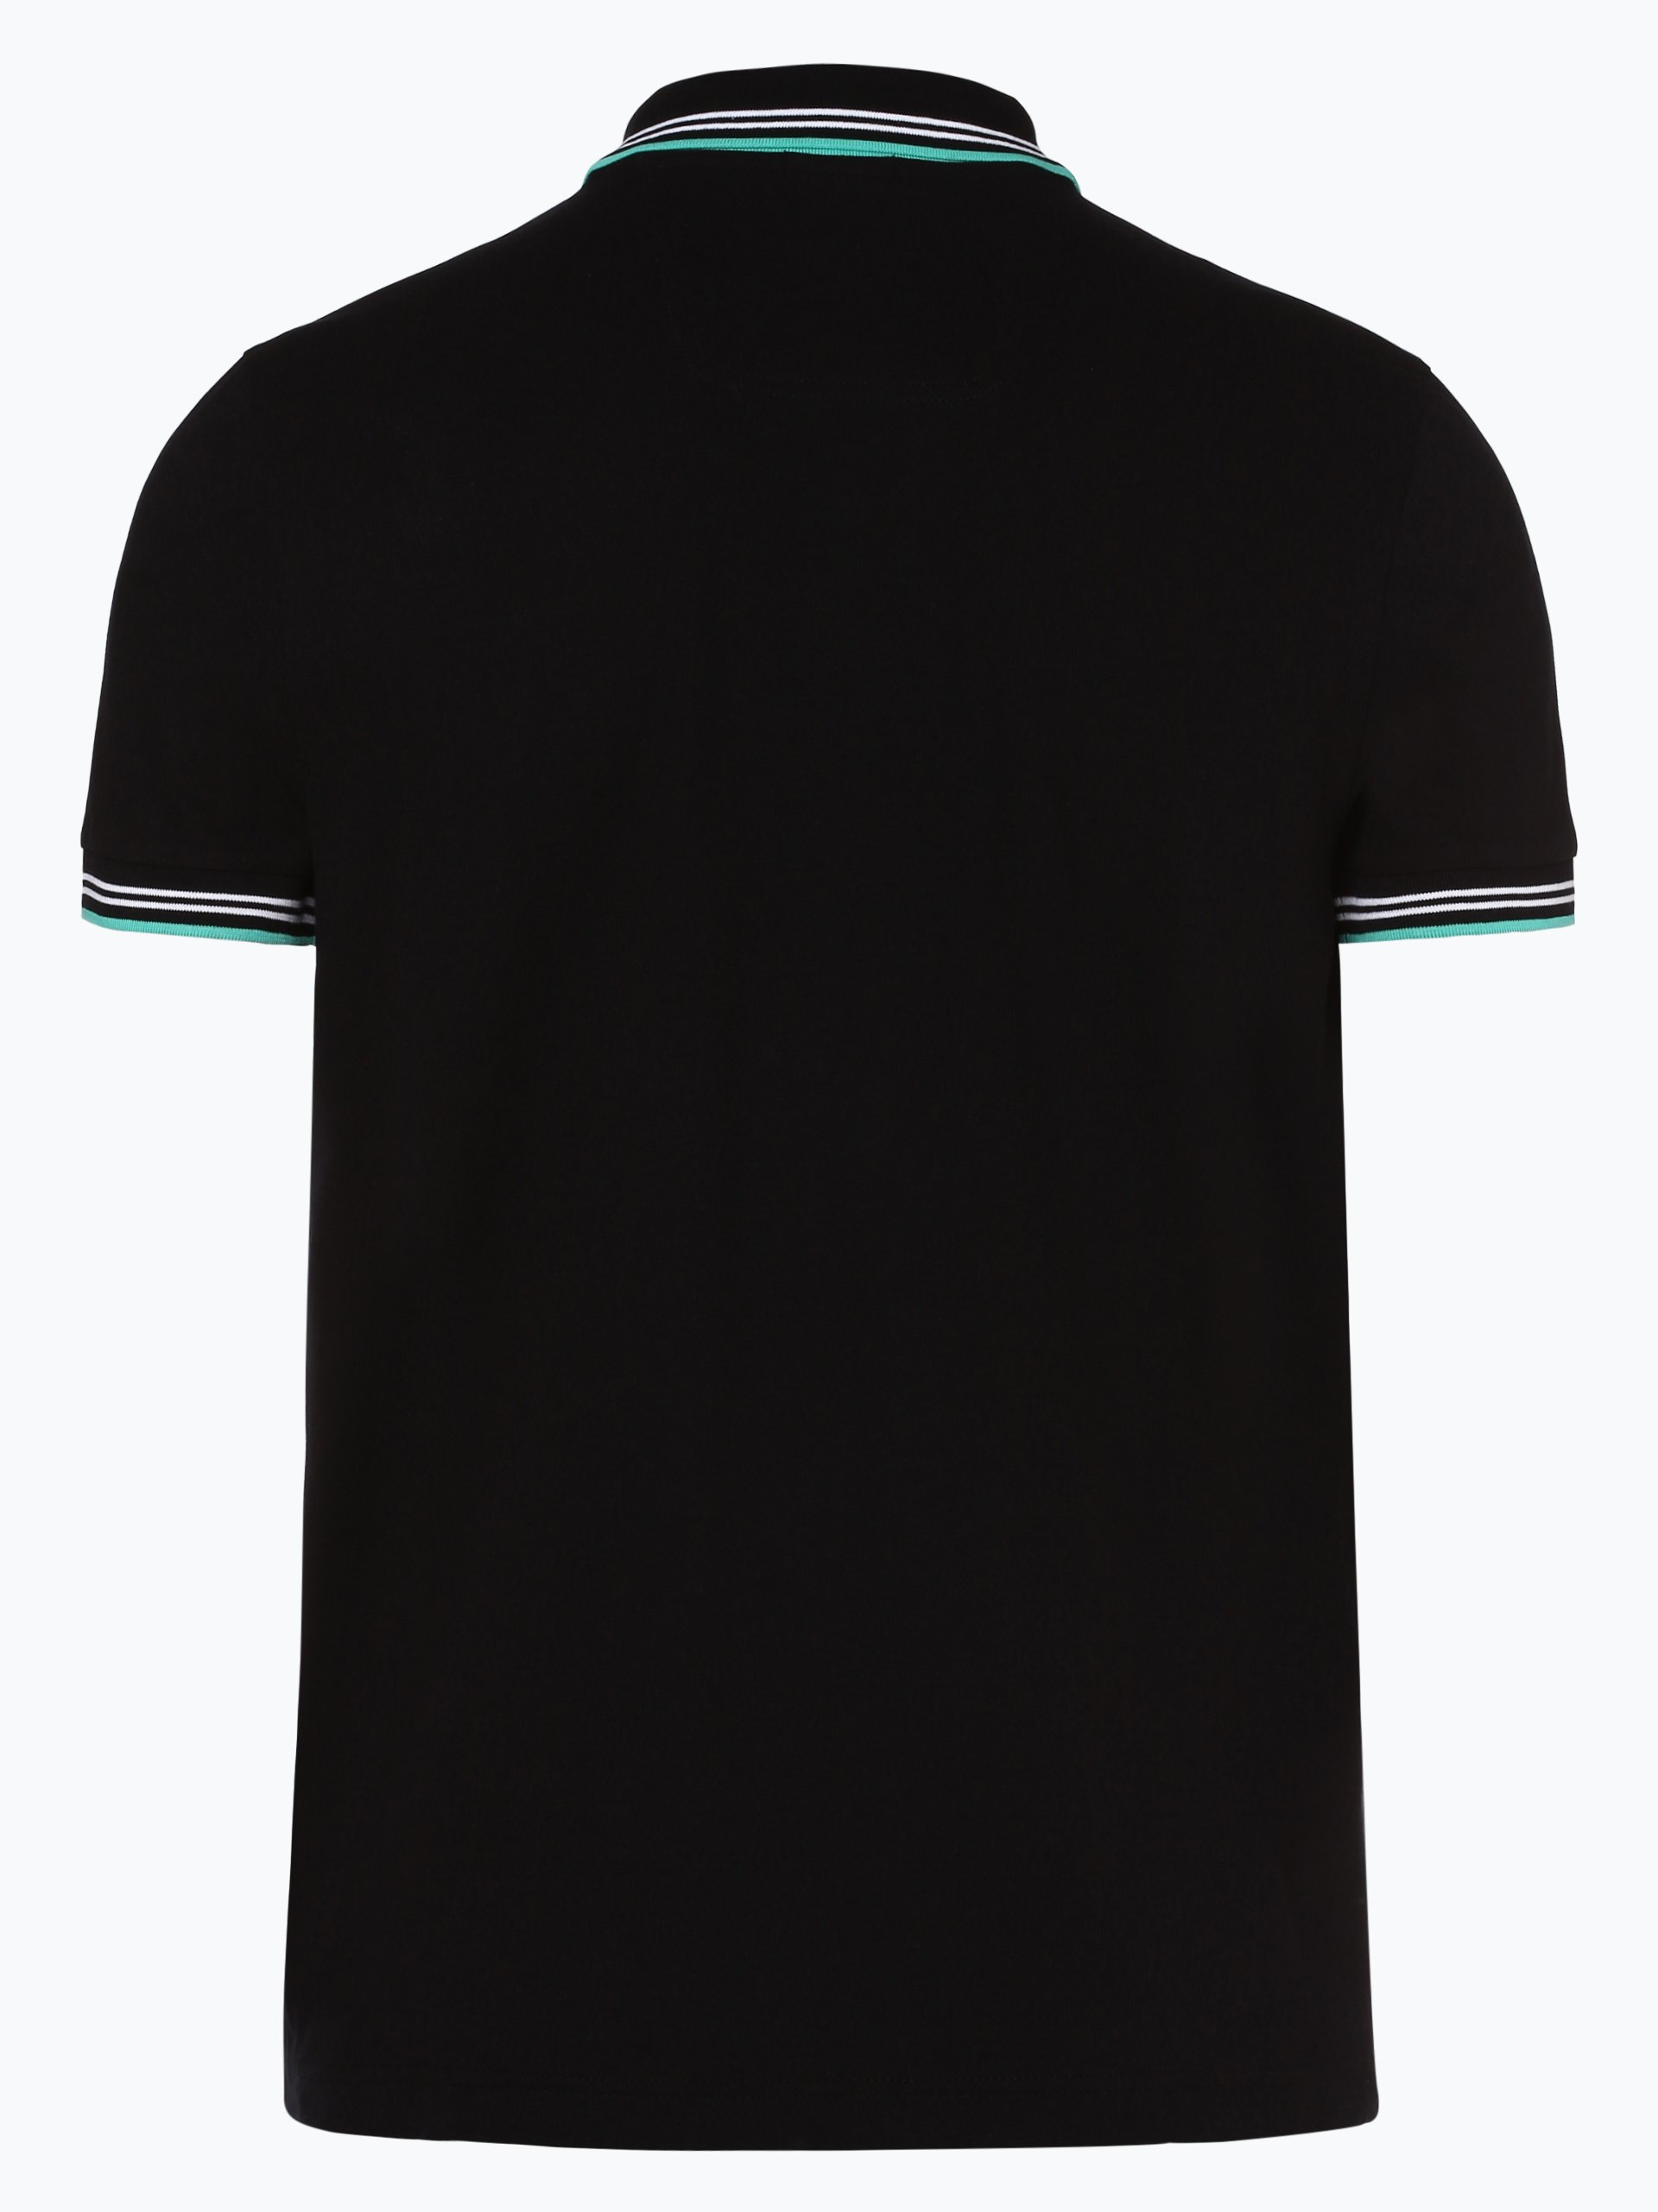 BOSS Athleisure Herren Poloshirt - Paul Curved